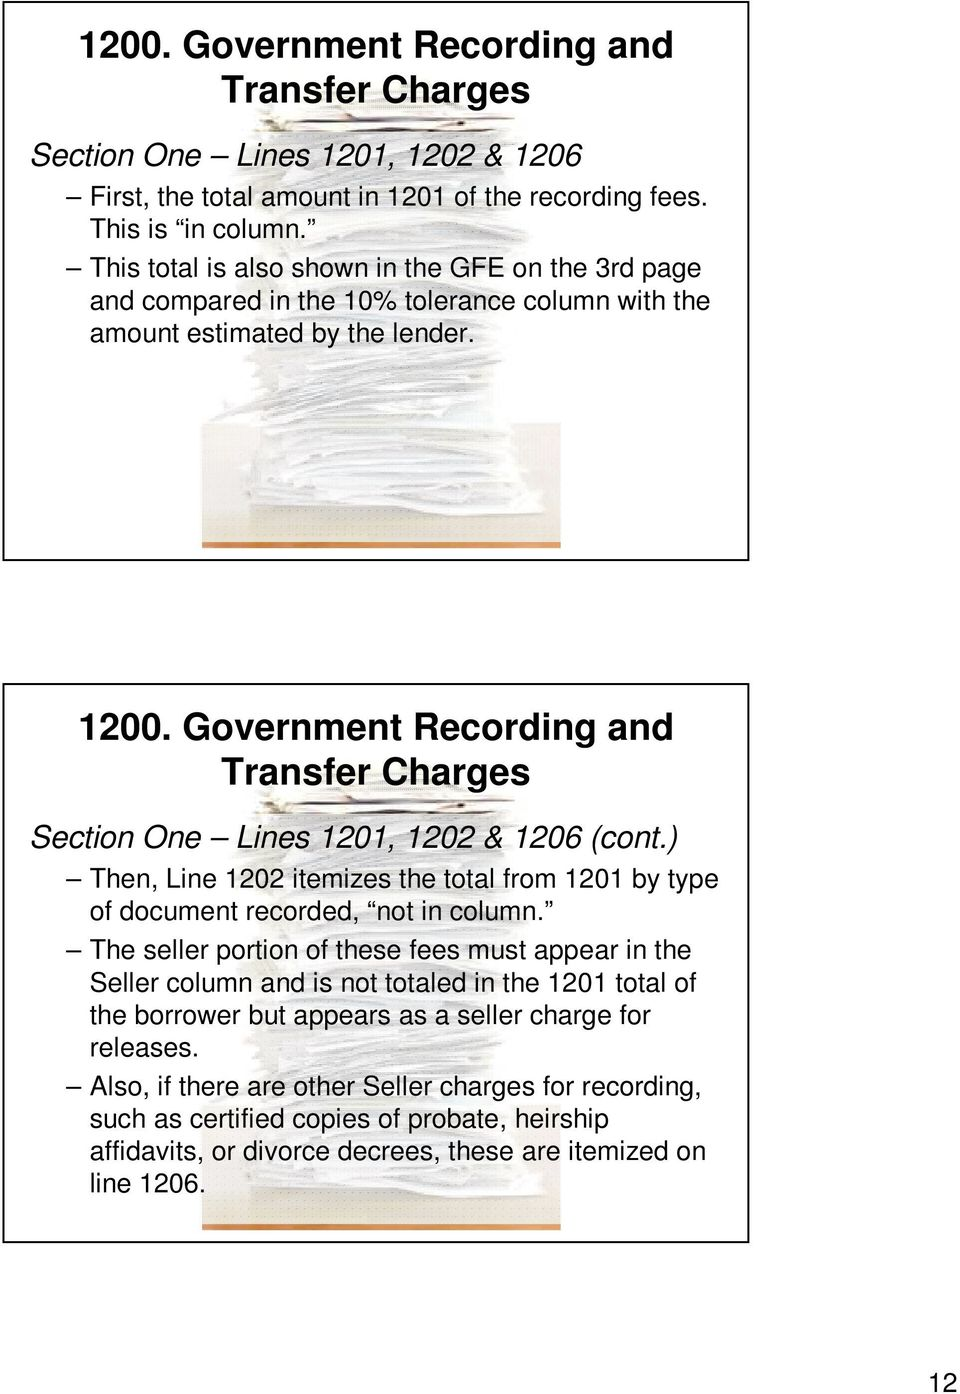 Government Recording and Transfer Charges Section One Lines 1201, 1202 & 1206 (cont.) Then, Line 1202 itemizes the total from 1201 by type of document recorded, not in column.